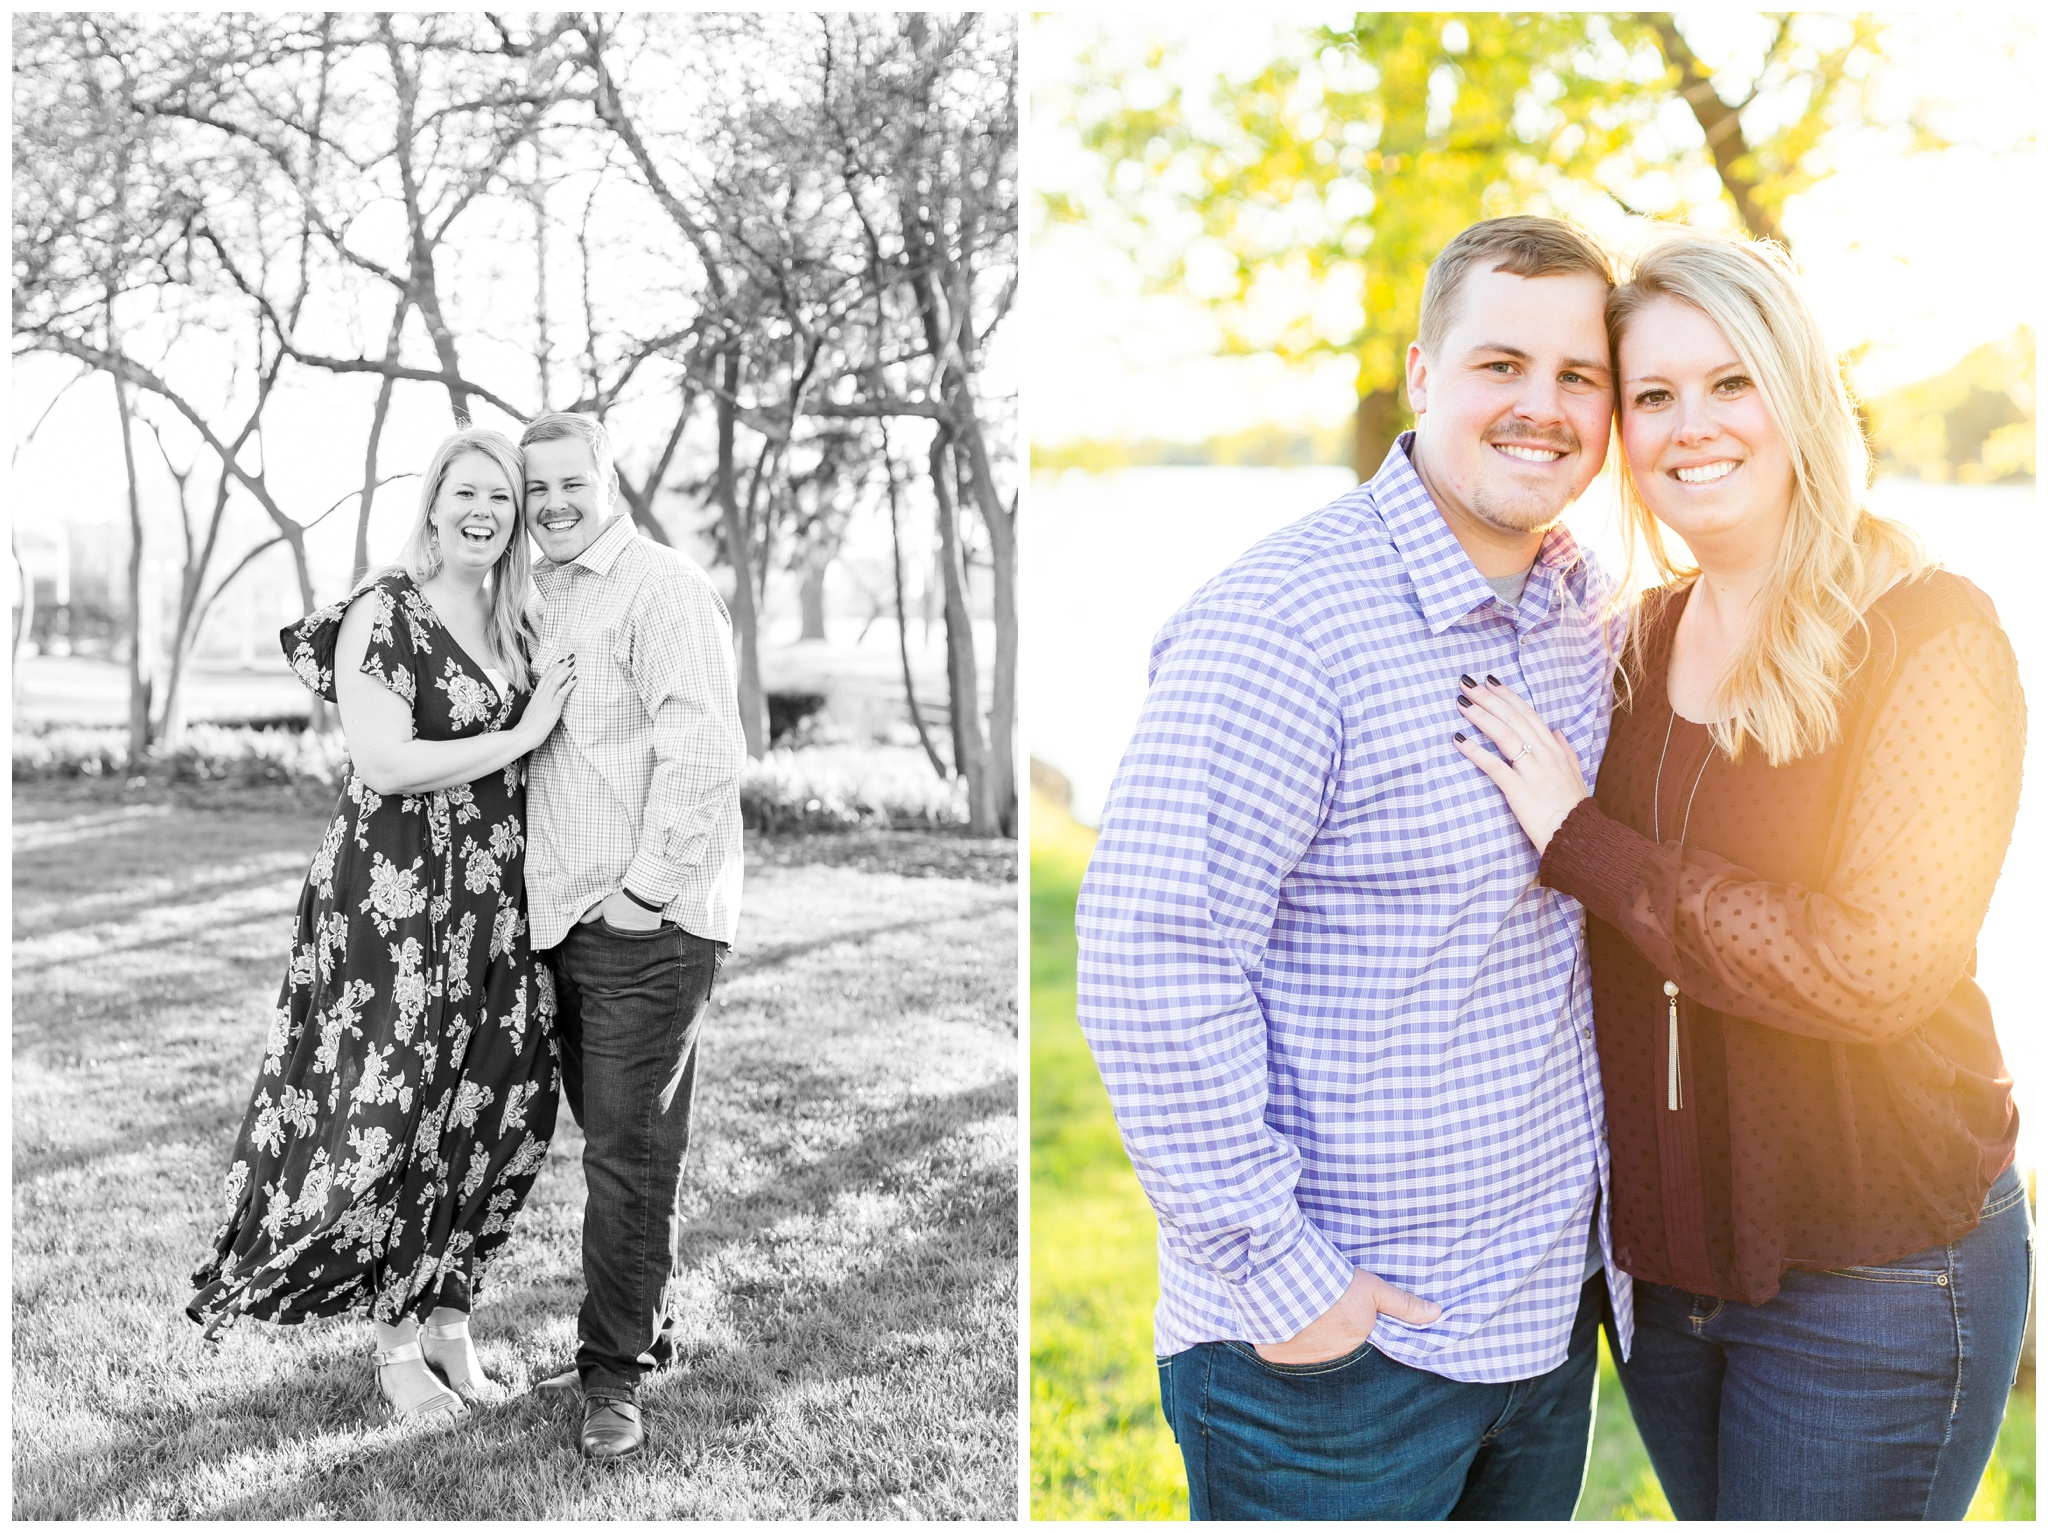 nicholas_conservatory_engagement_session_rockford_illinois_caynay_photo_2992.jpg